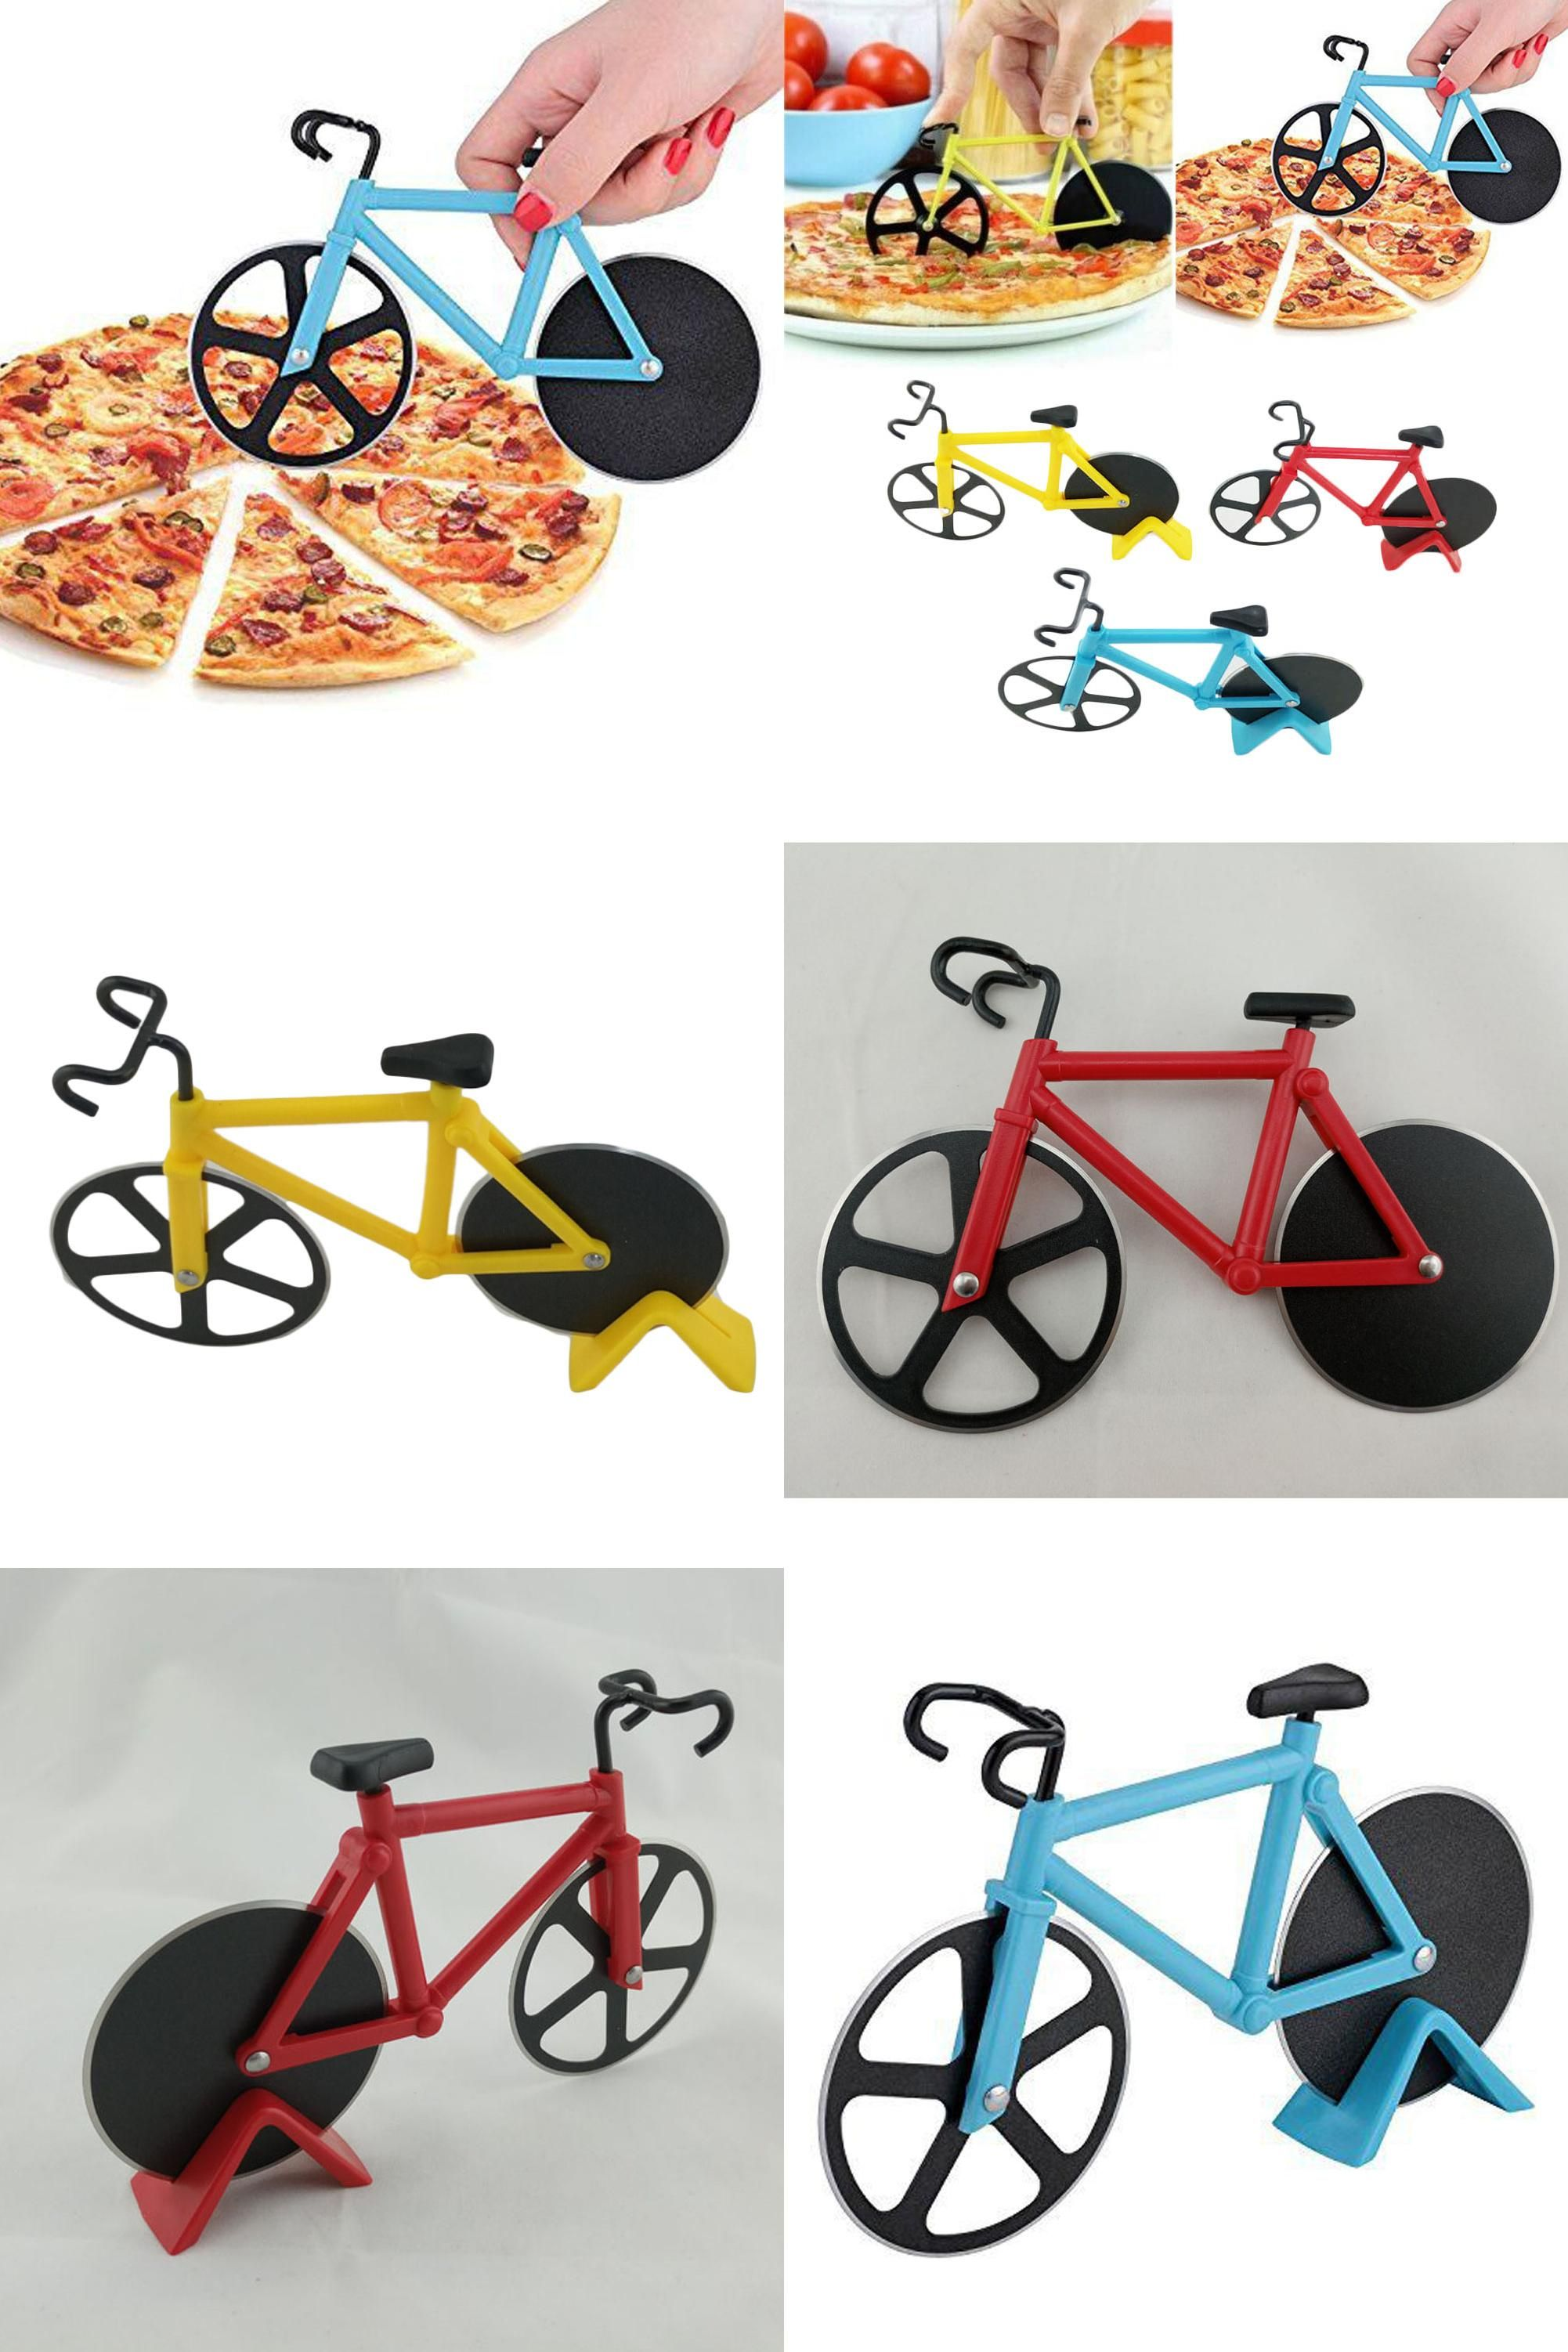 Visit To Buy High Quality Bicycle Pizza Cutter Dual Stainless